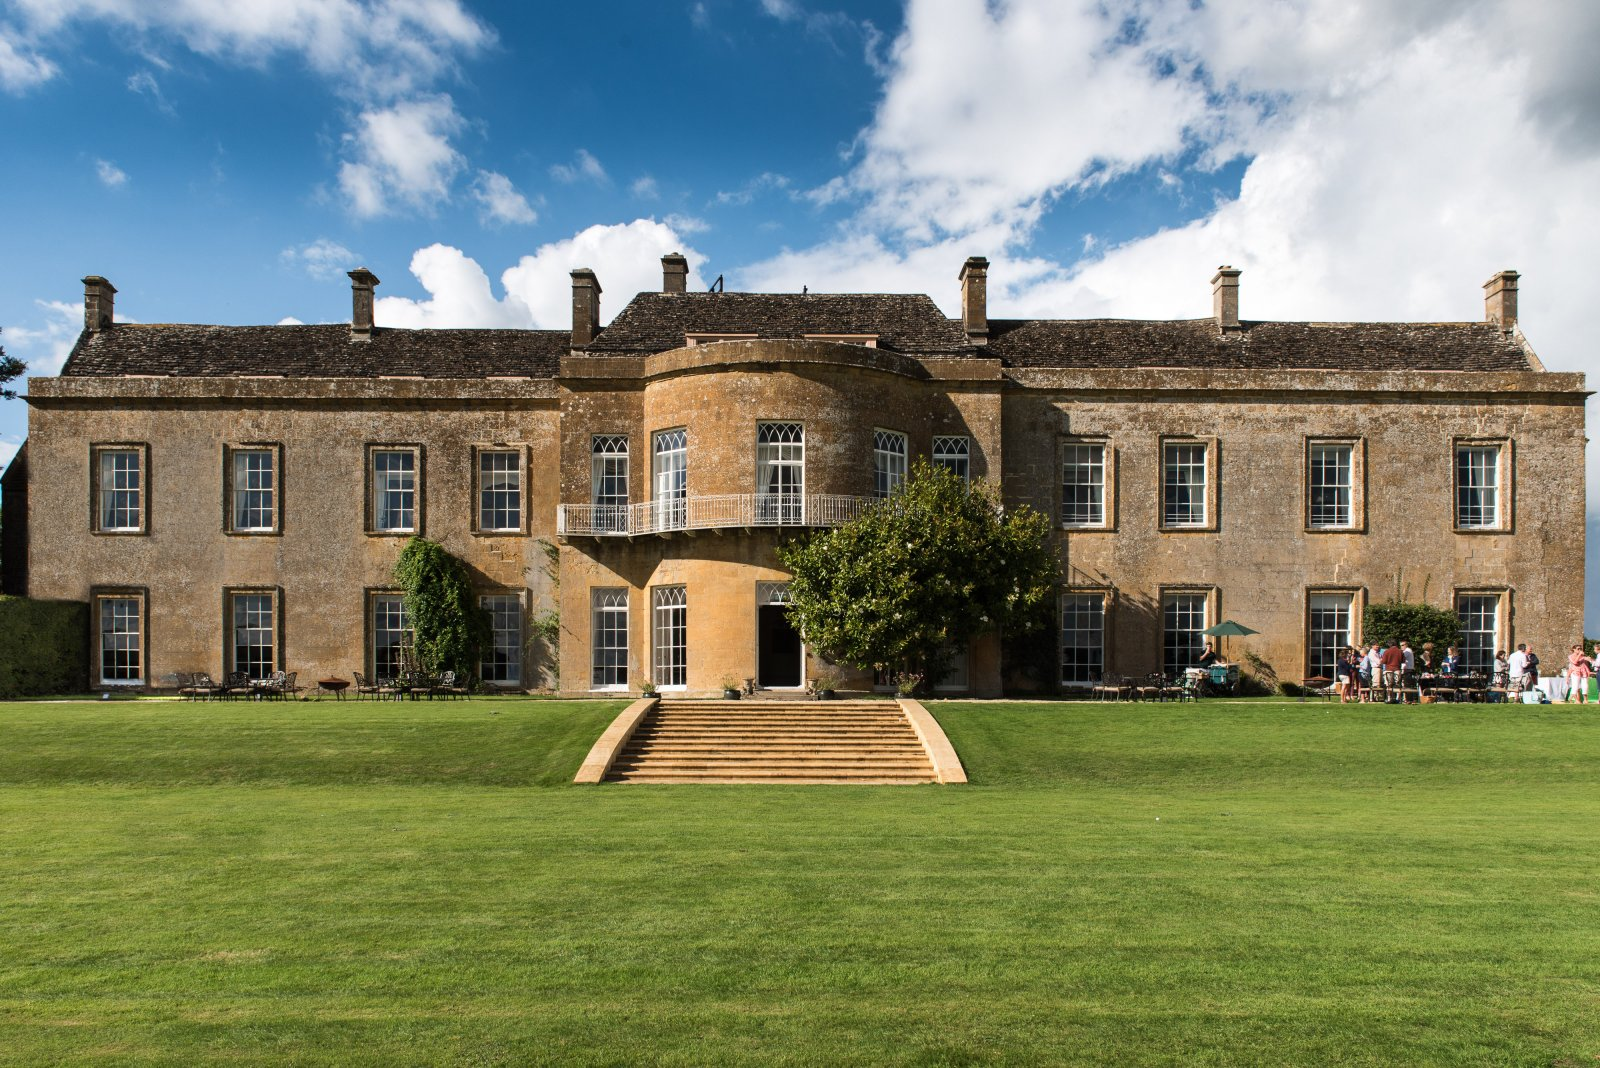 norh cardbury court, somerset wedding venue, no corkage